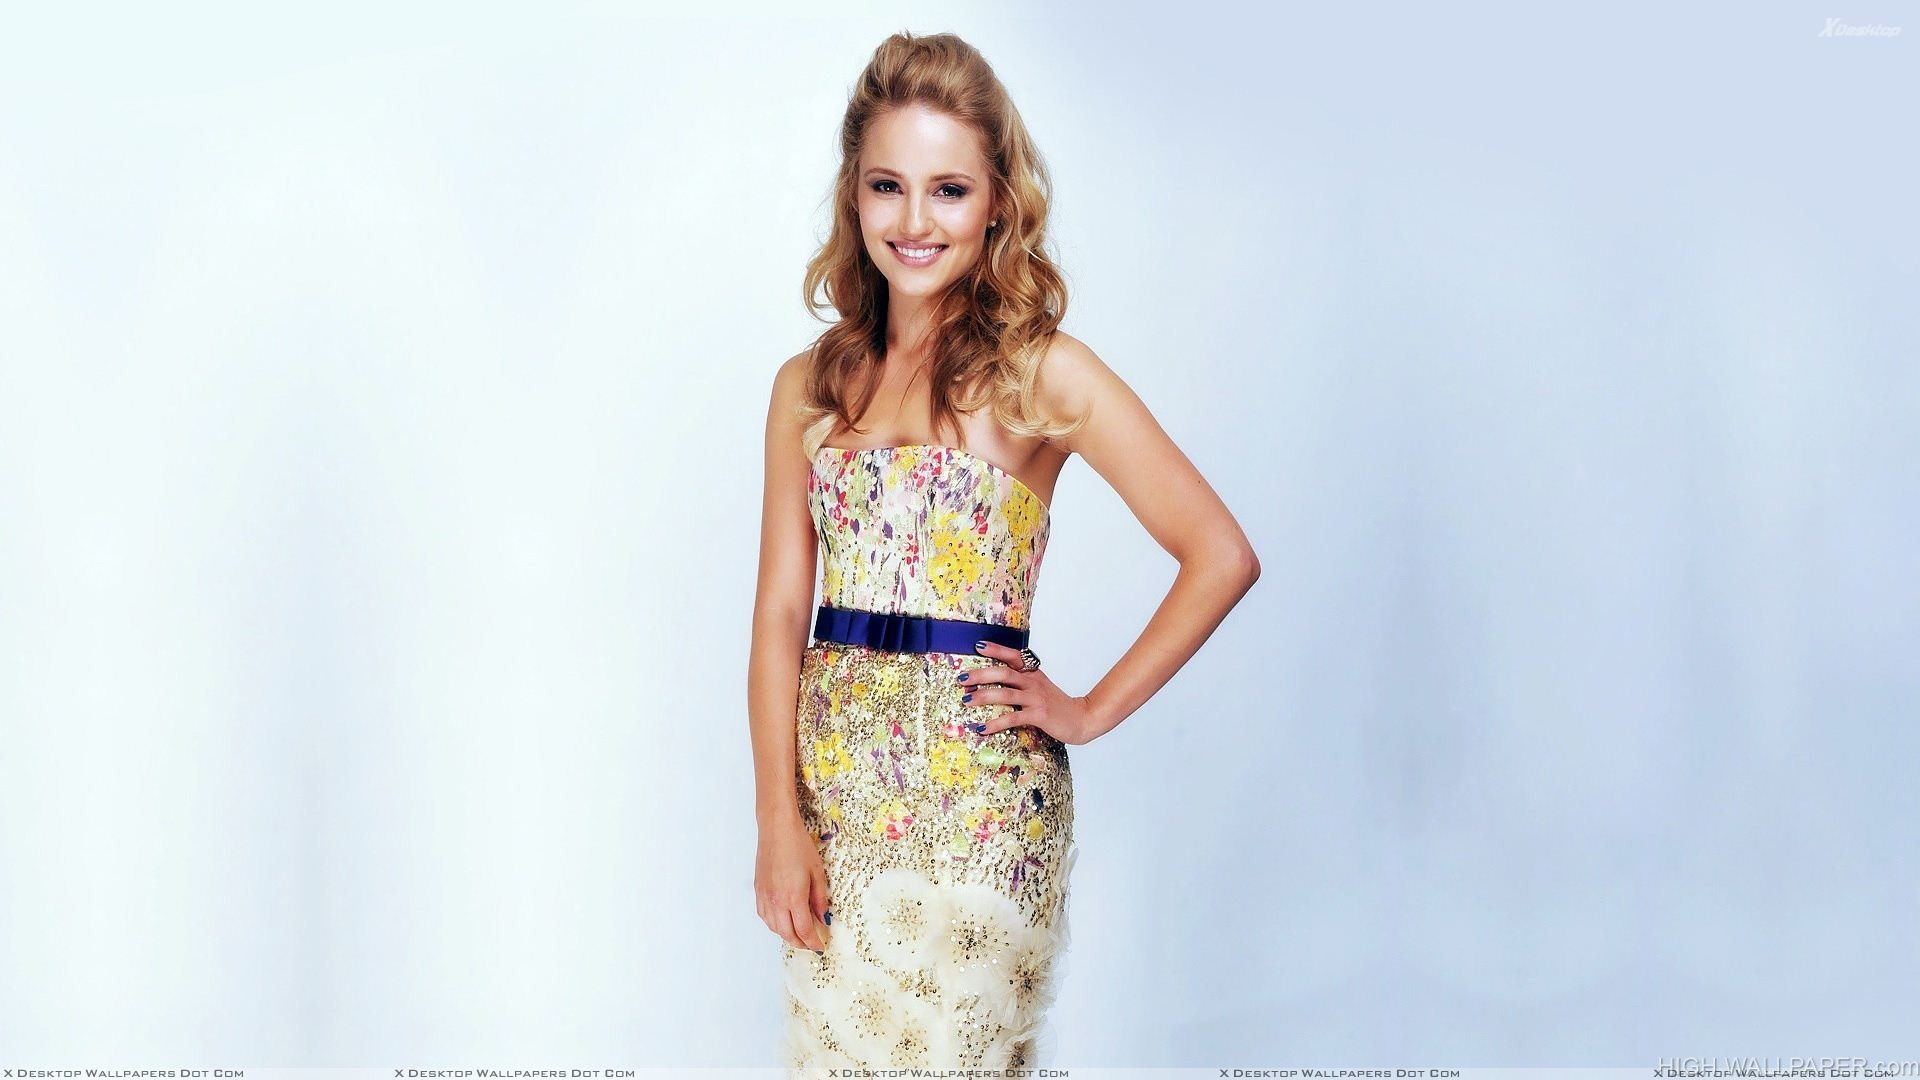 Dianna Agron Smiling In Colorfull Dress